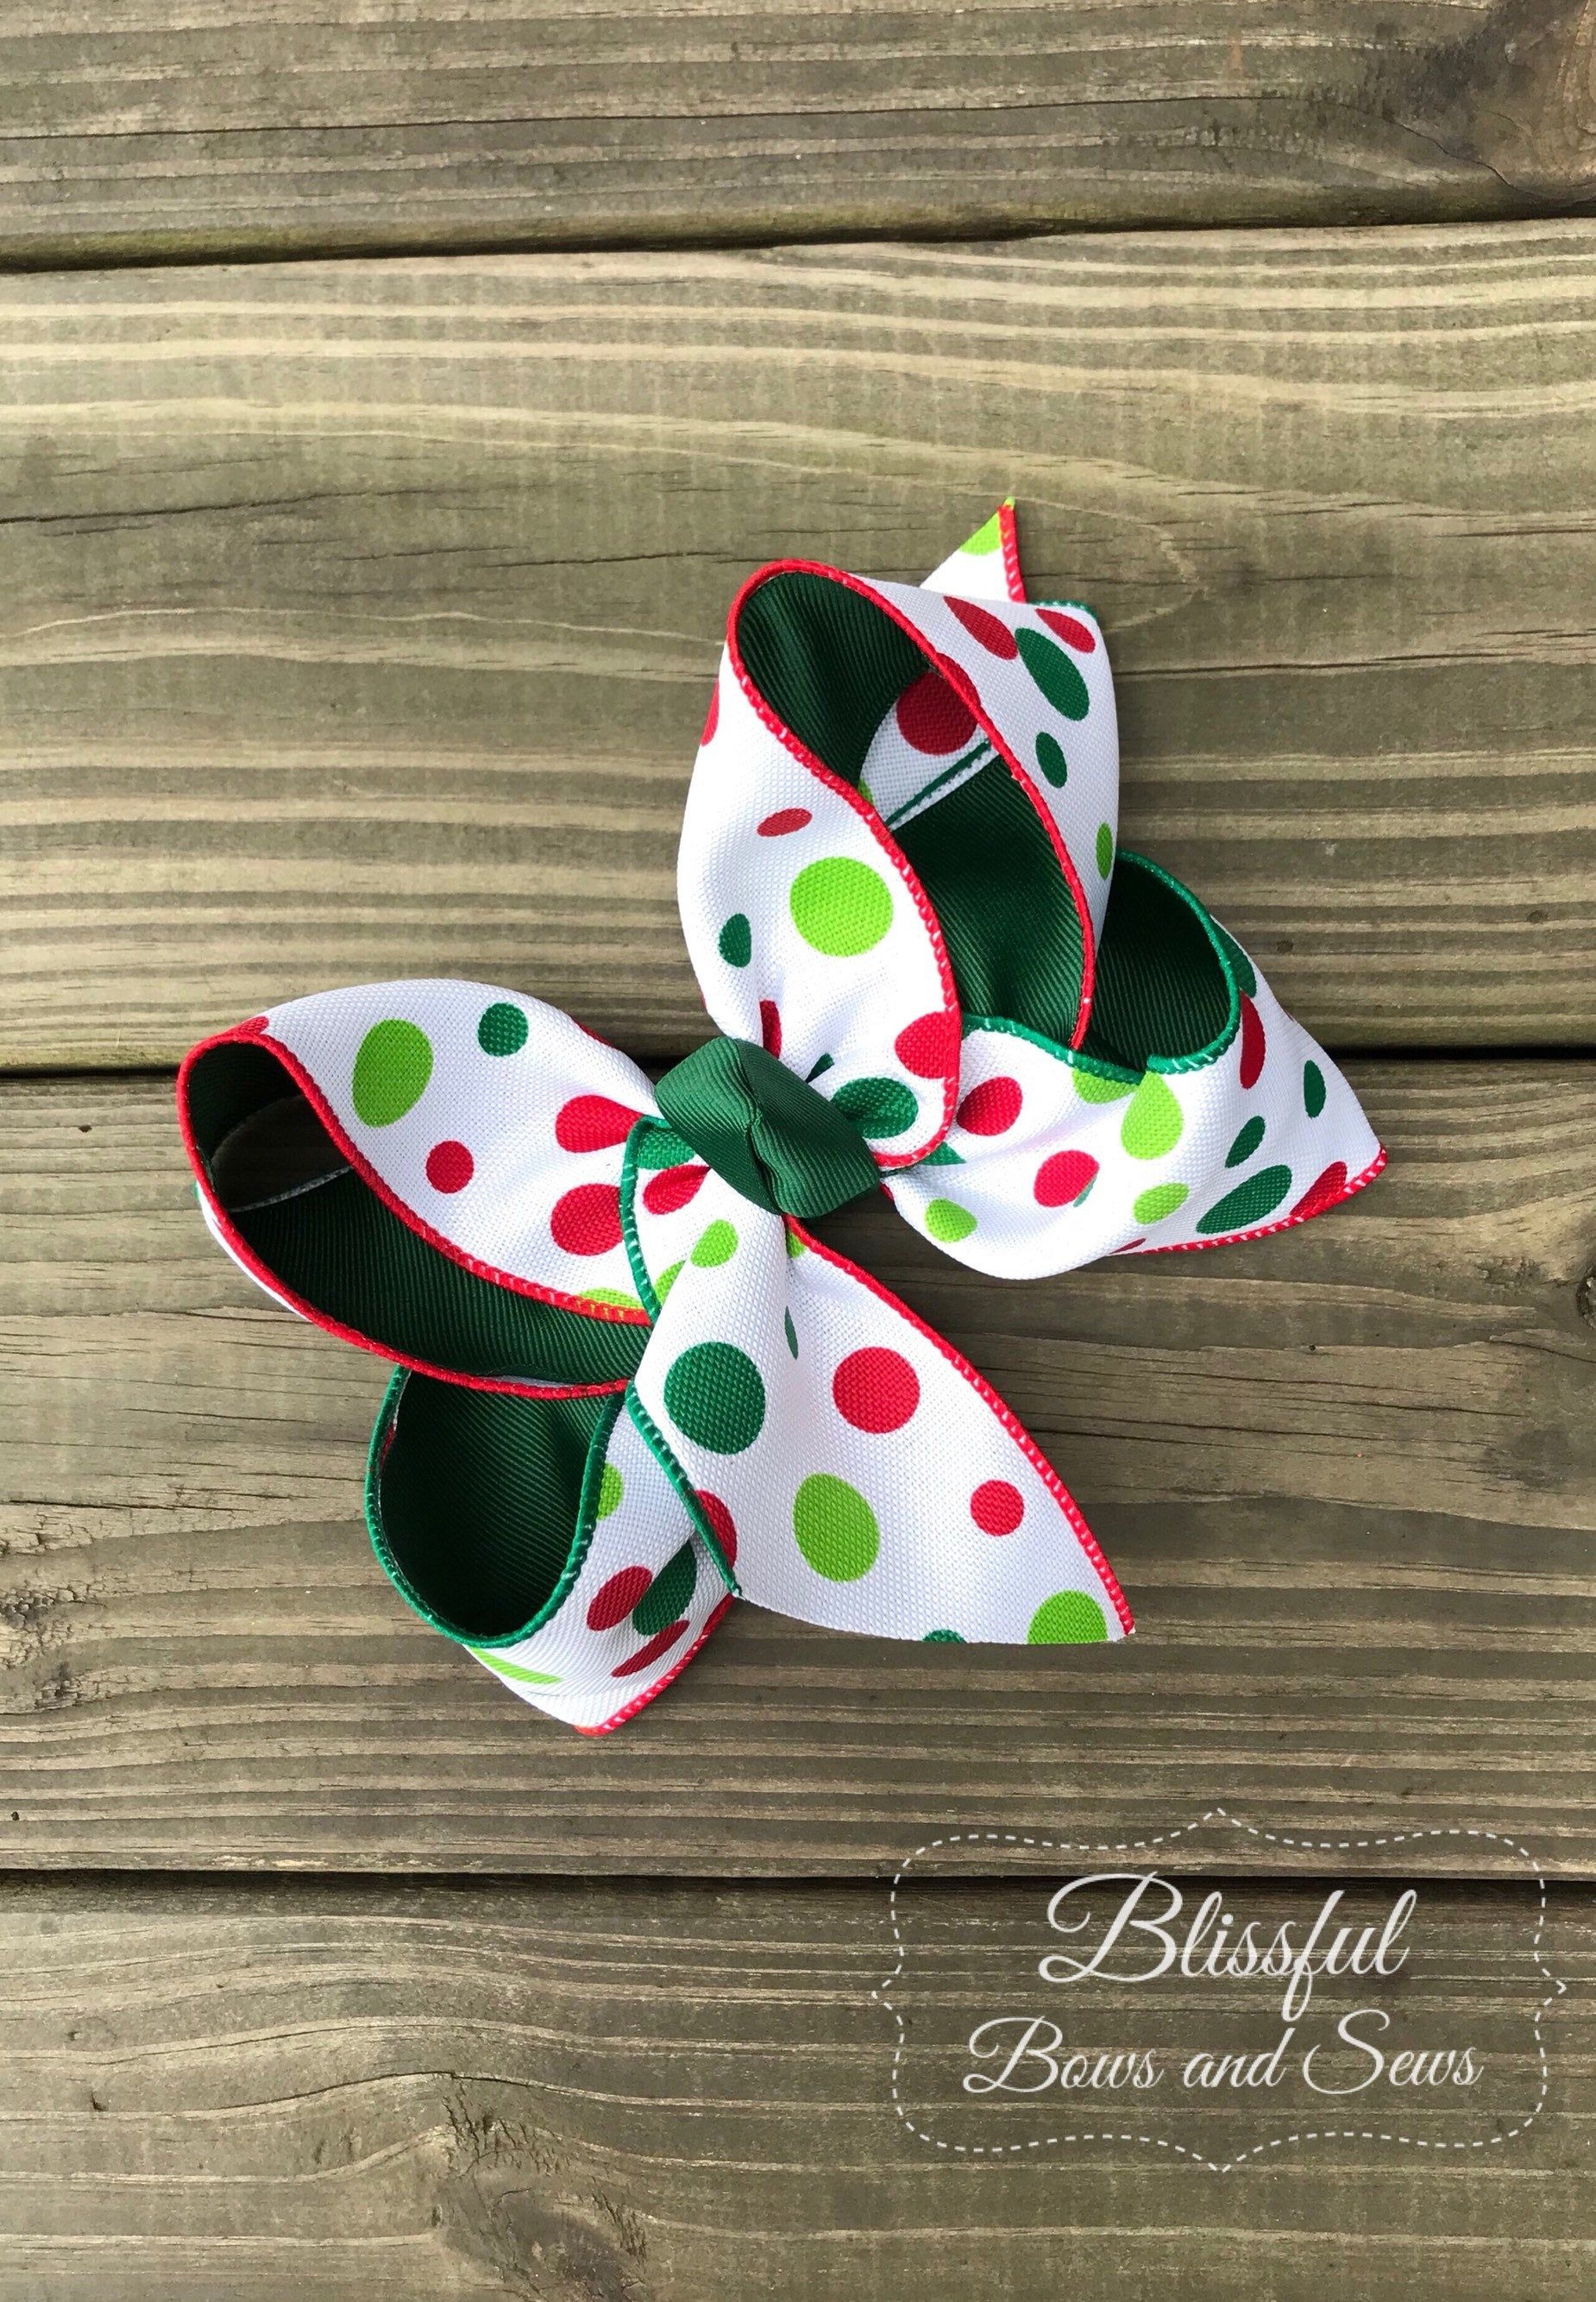 Boutique Hairbow Green Hairbow Multi Colored Hairbow Big Hairbow Big Thanksgiving HairbowFall Hairbow Girls Big Hairbow